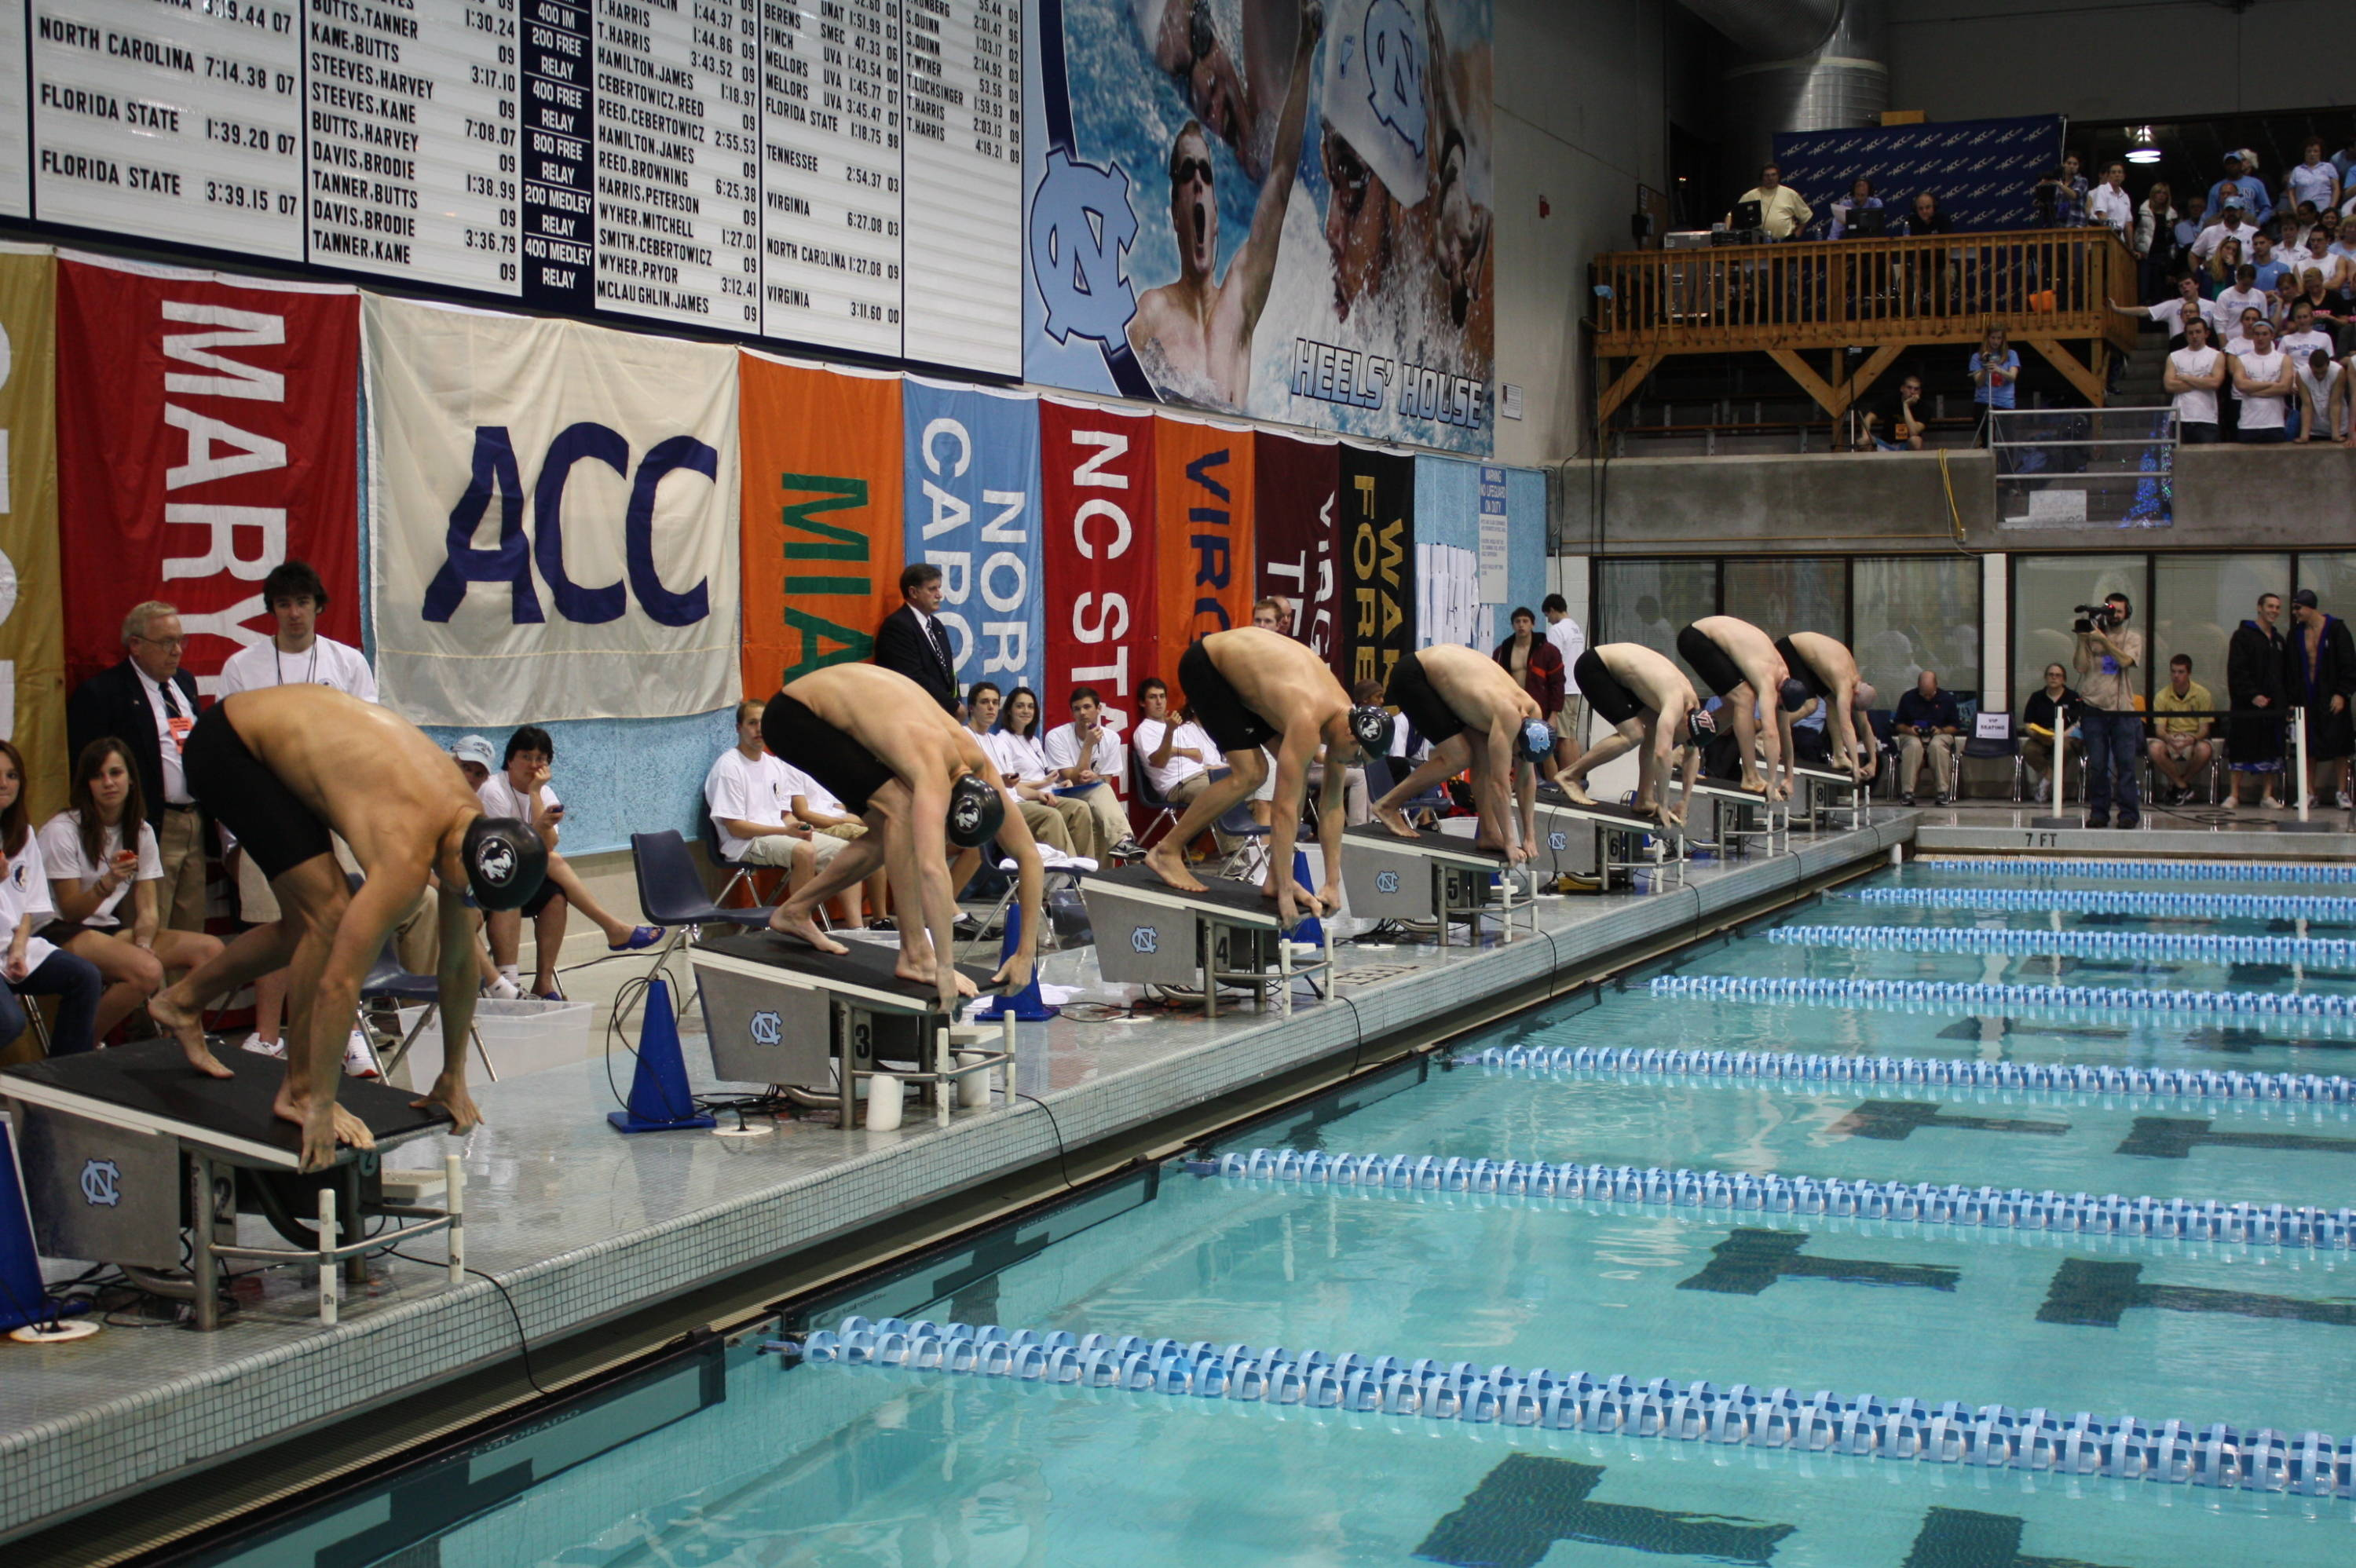 ACC Championships Day 3